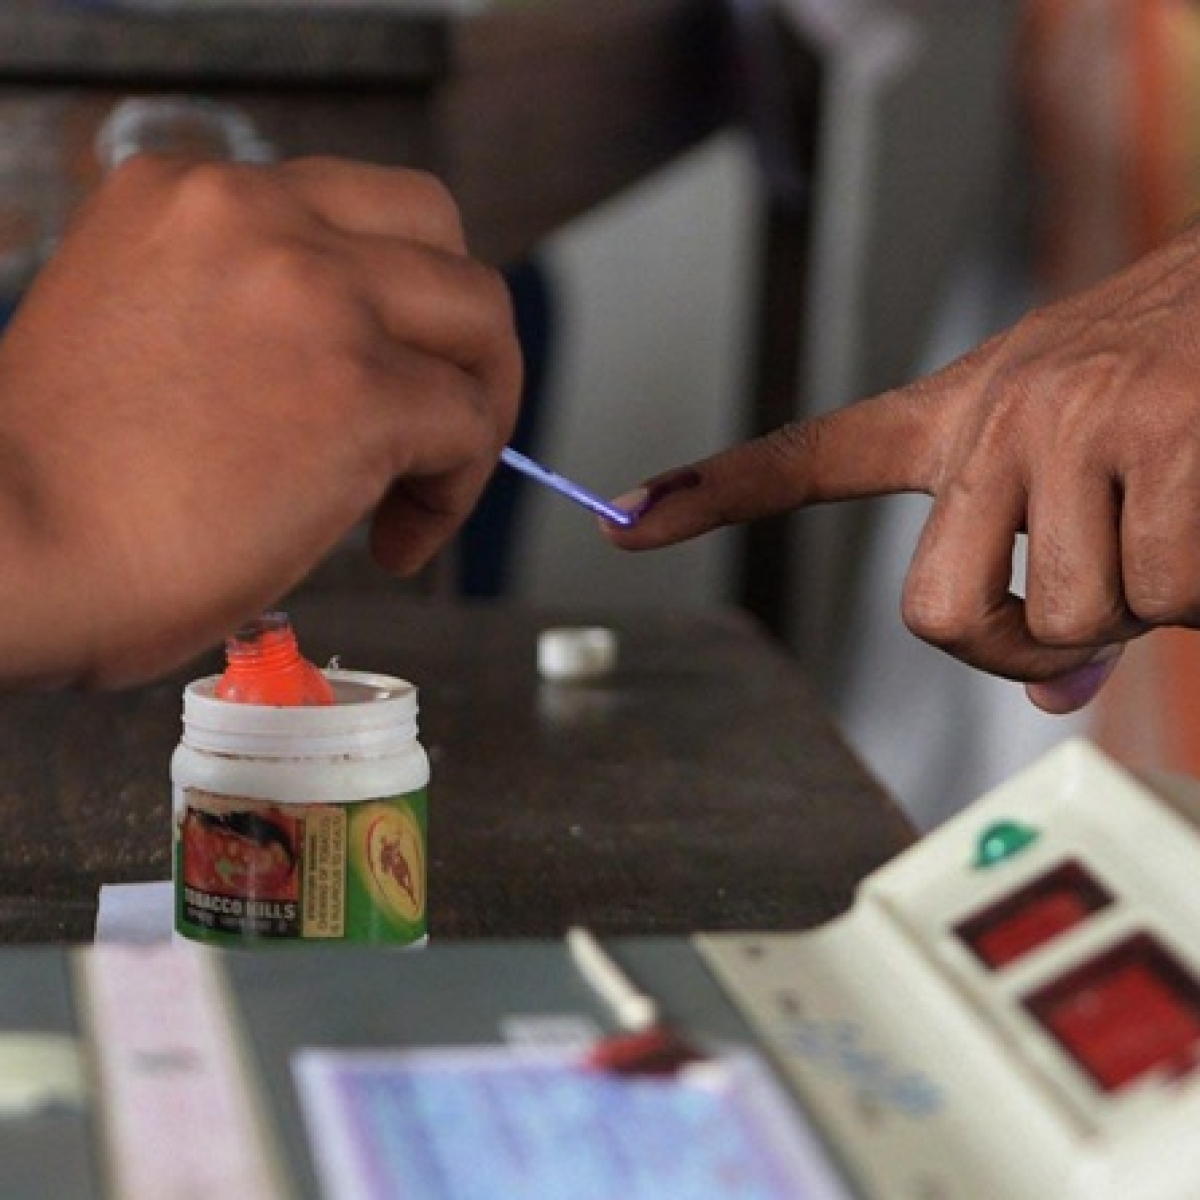 Maharashtra Elections 2019: Voter turnout till 10 am is 5.79%